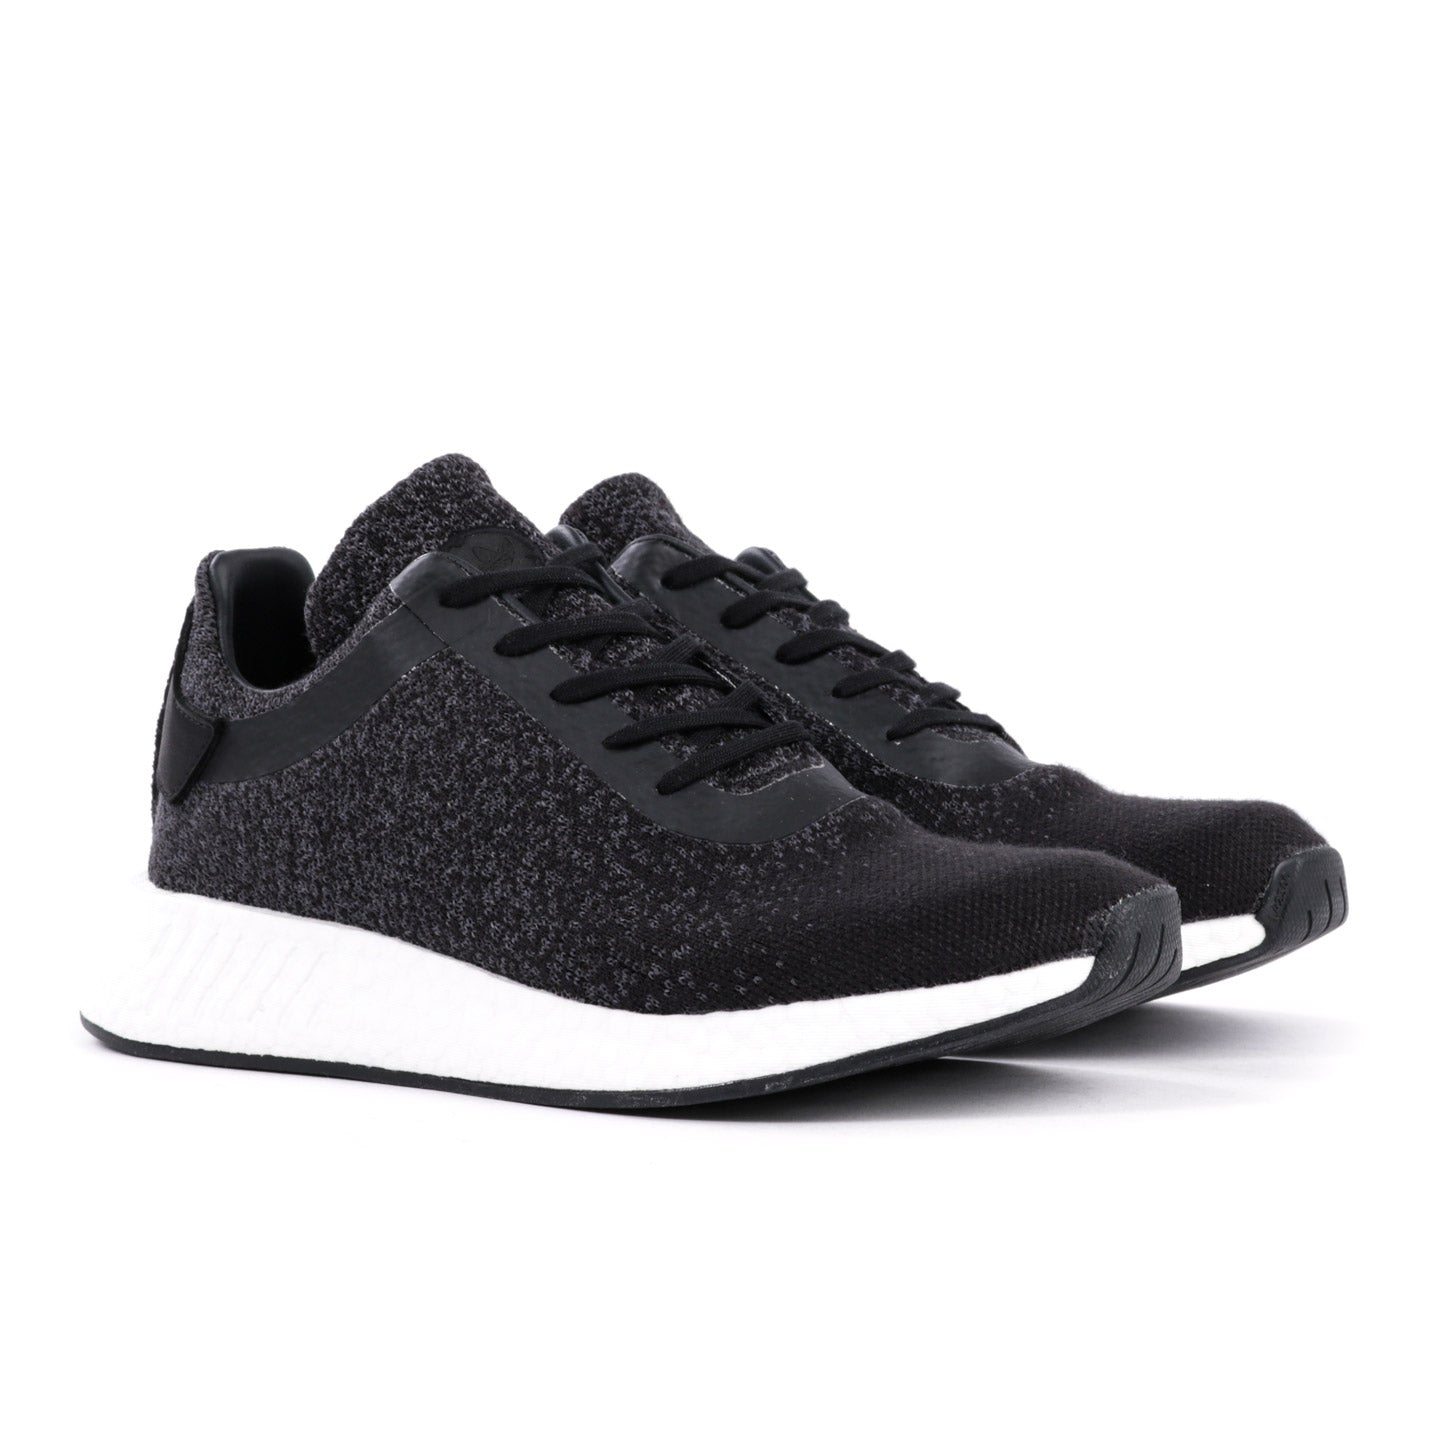 ADIDAS ORIGINALS BY WINGS + HORNS NMD R2 PRIME KNIT BLACK